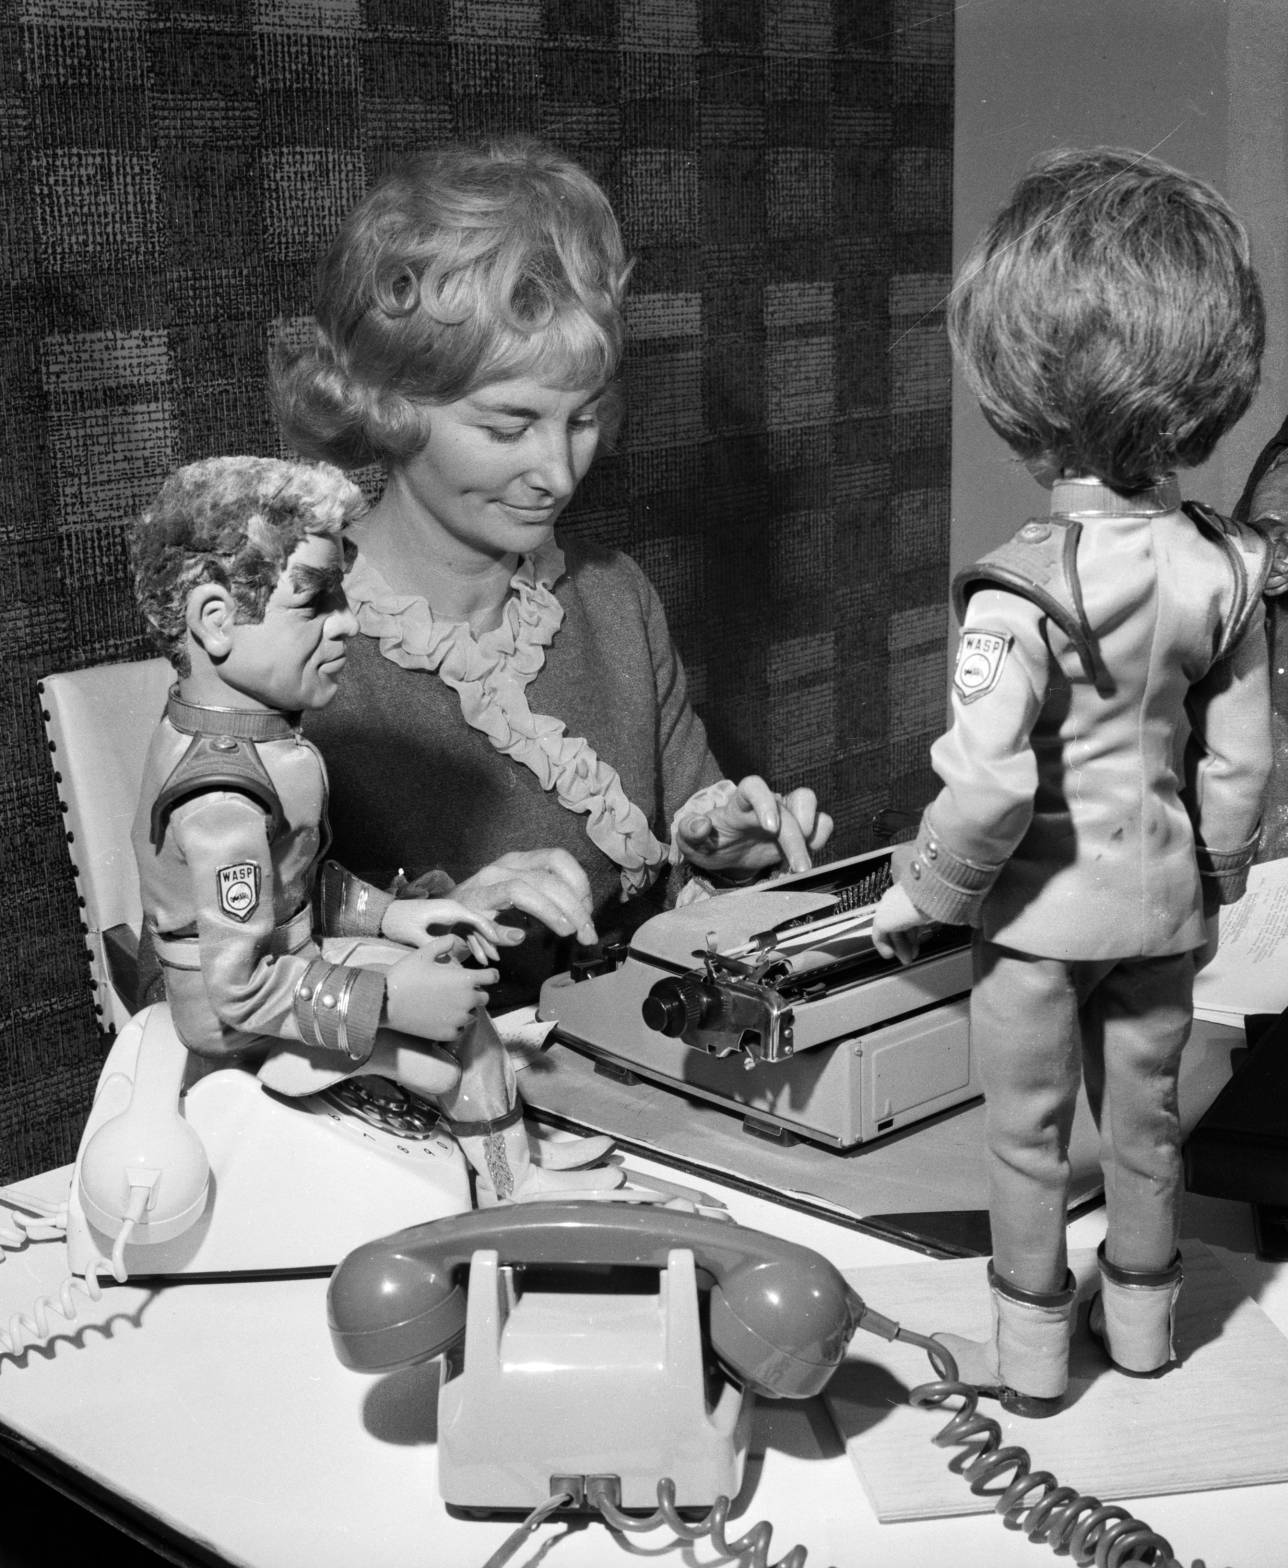 Sylvia Anderson, co-director of AP Studios and designer of the puppets used in the TV adventure series 'Stingray', with two characters from the series 'Commander Shore and Atlanta'.